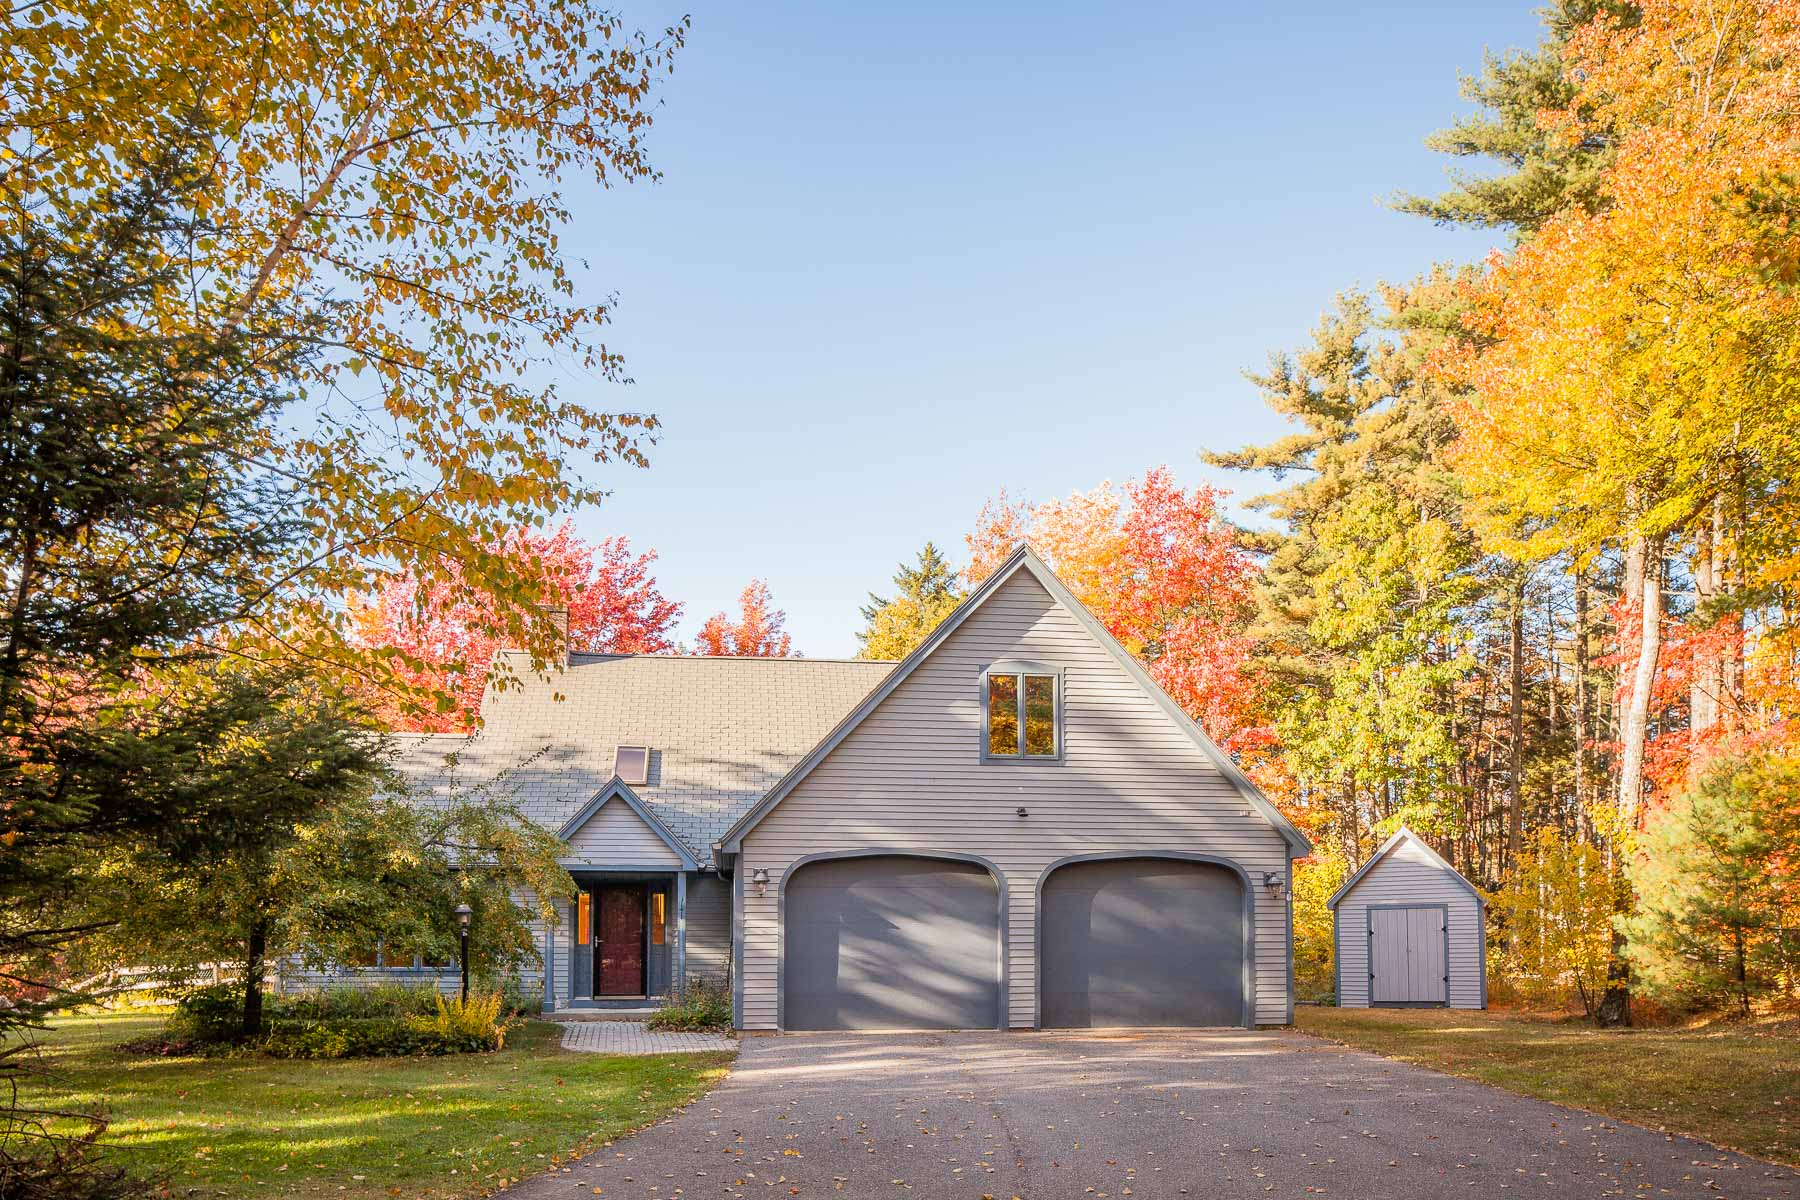 Single Family Home for Sale at 345 Park Street Rockport, Maine, 04856 United States